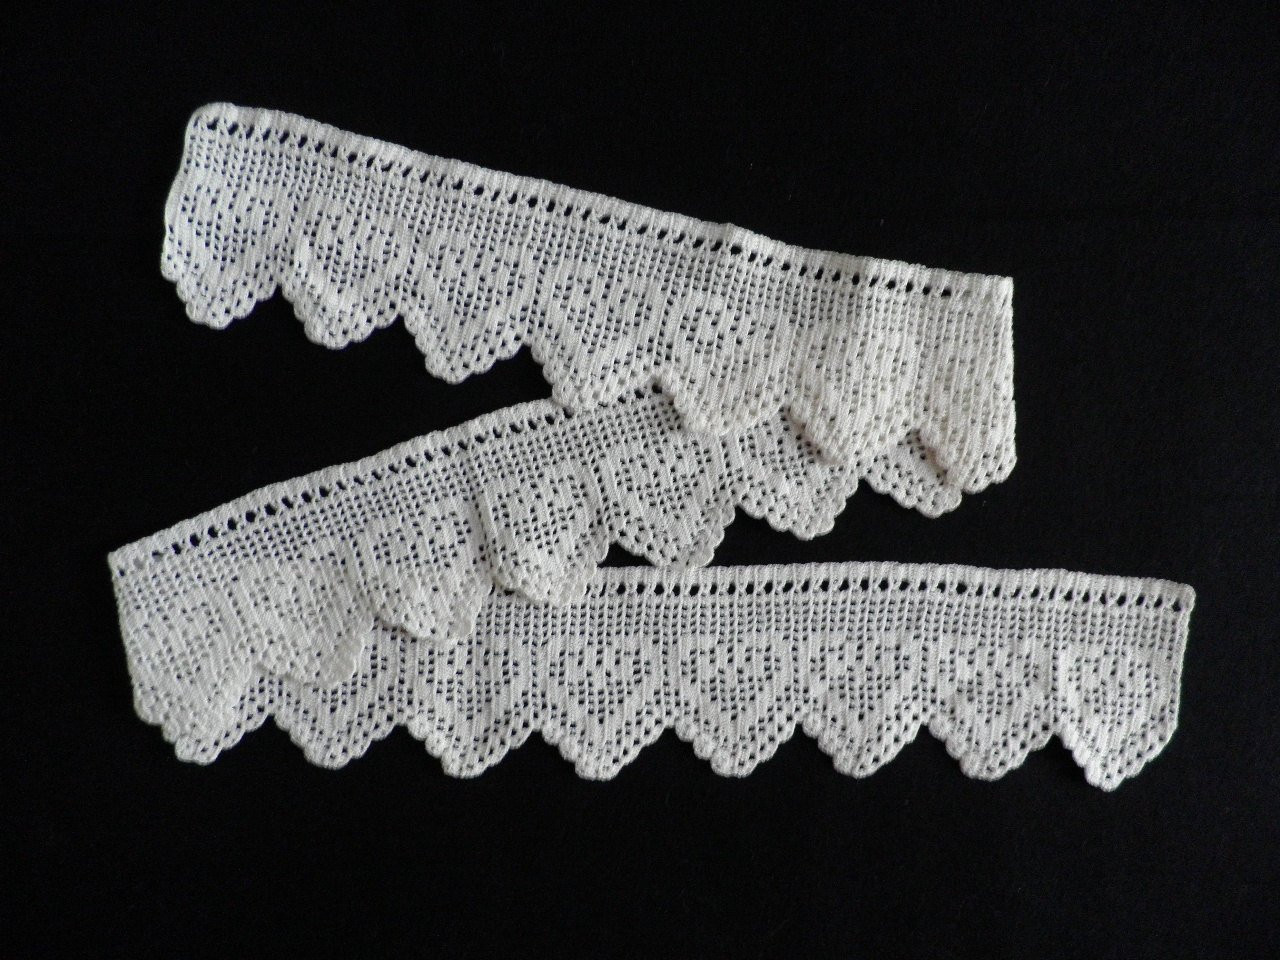 Crochet Lace Trimming Best Of Crocheted Lace Edging Vintage White Heart Pattern Of Superb 50 Pics Crochet Lace Trimming